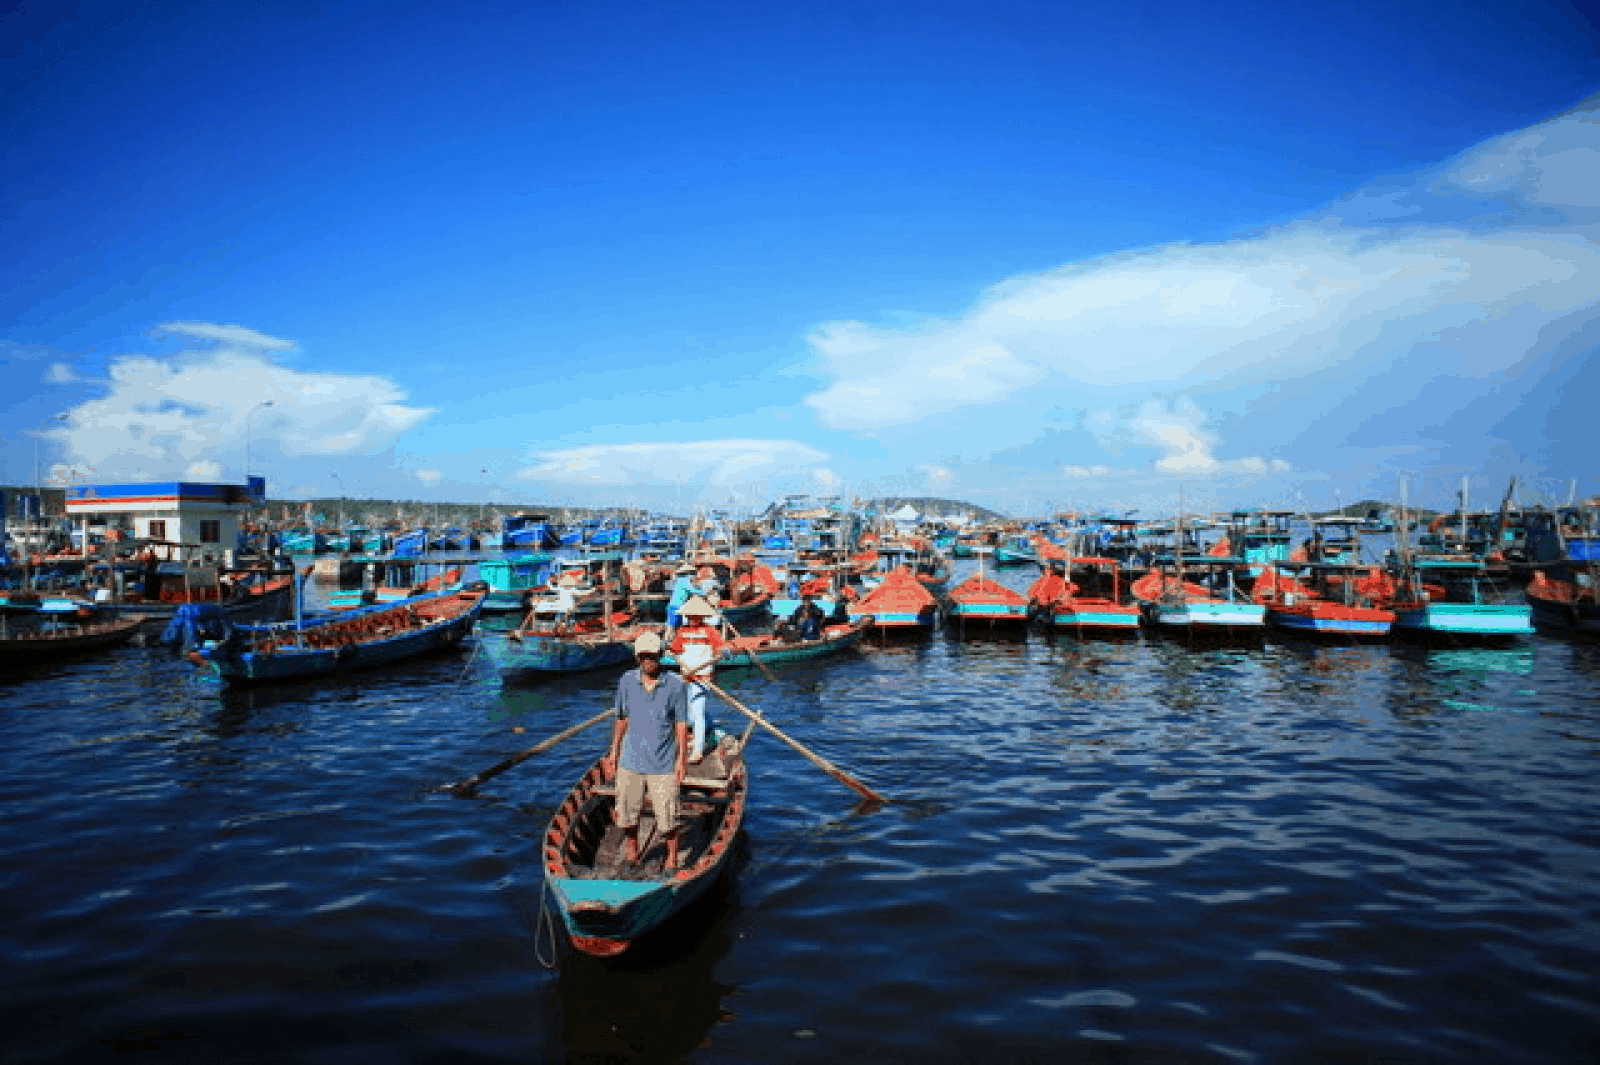 An Thoi Port in Southern Phu Quoc - explore the interesting life of fishermen